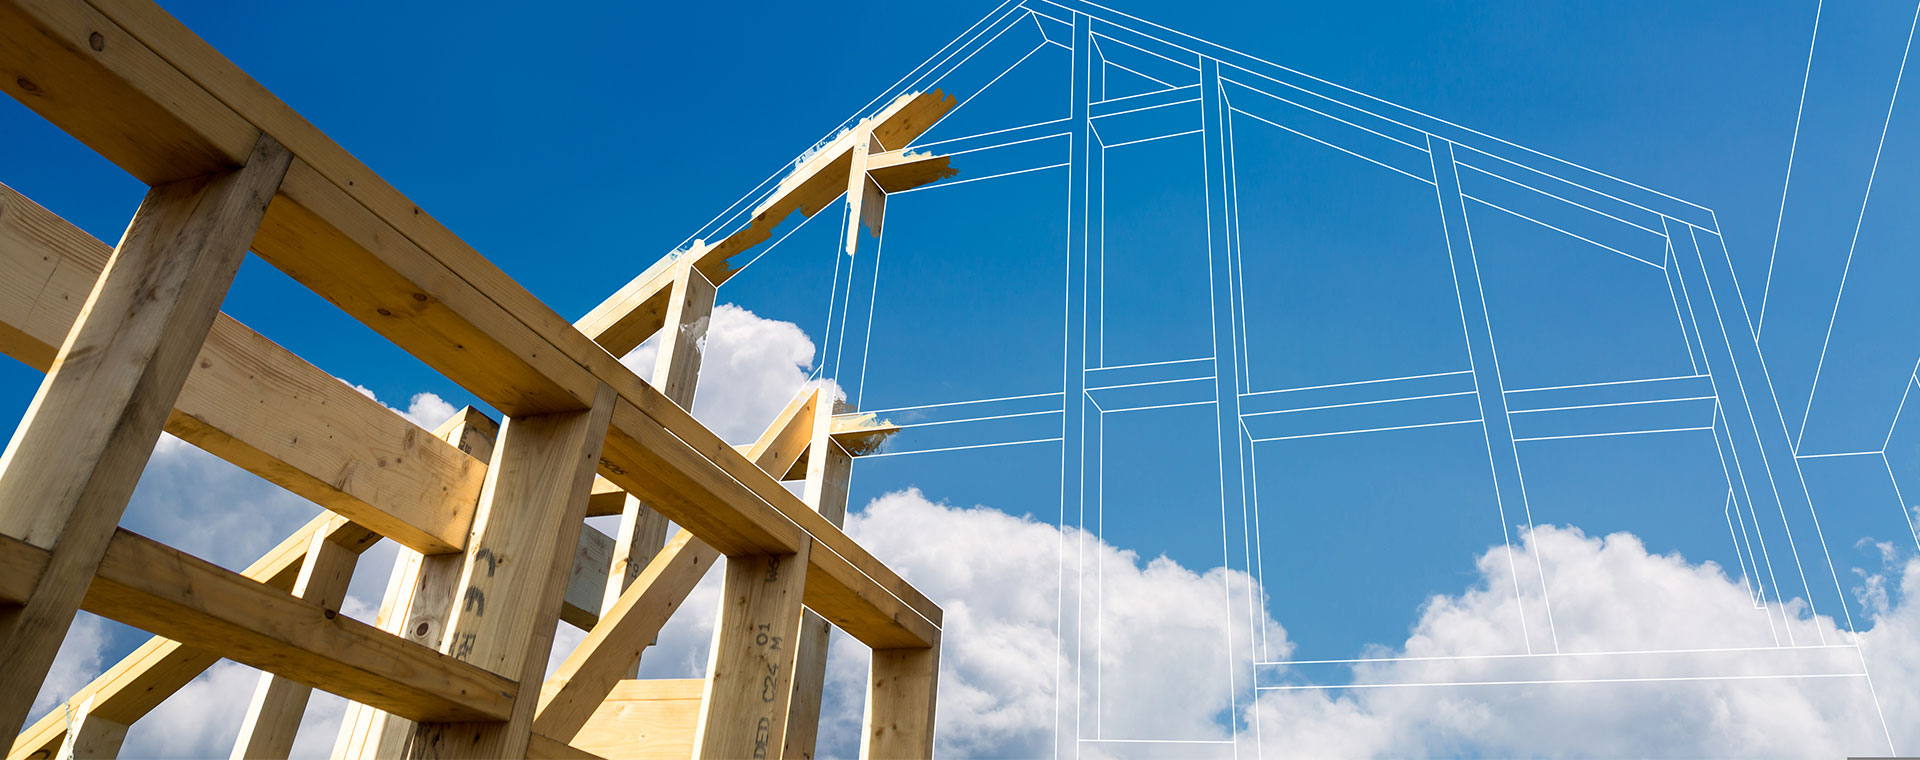 Quality Timber Frame Homes and Buildings slider image